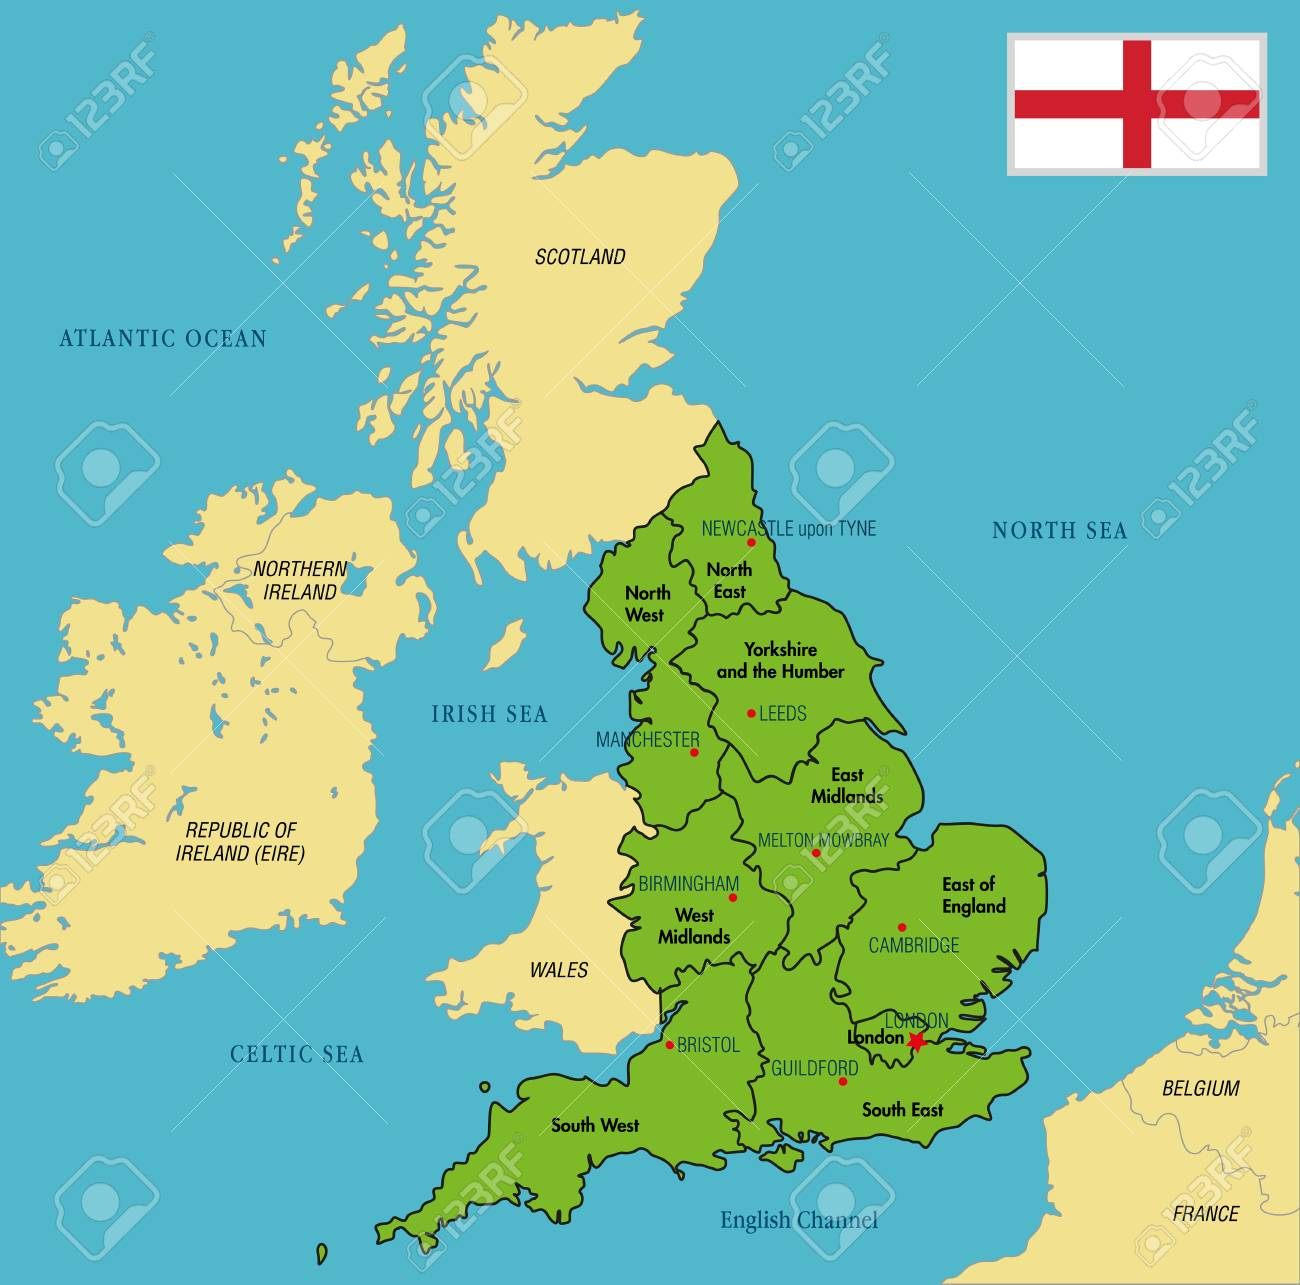 Map Of Uk Showing Regions.Vector Highly Detailed Political Map Of England With Regions